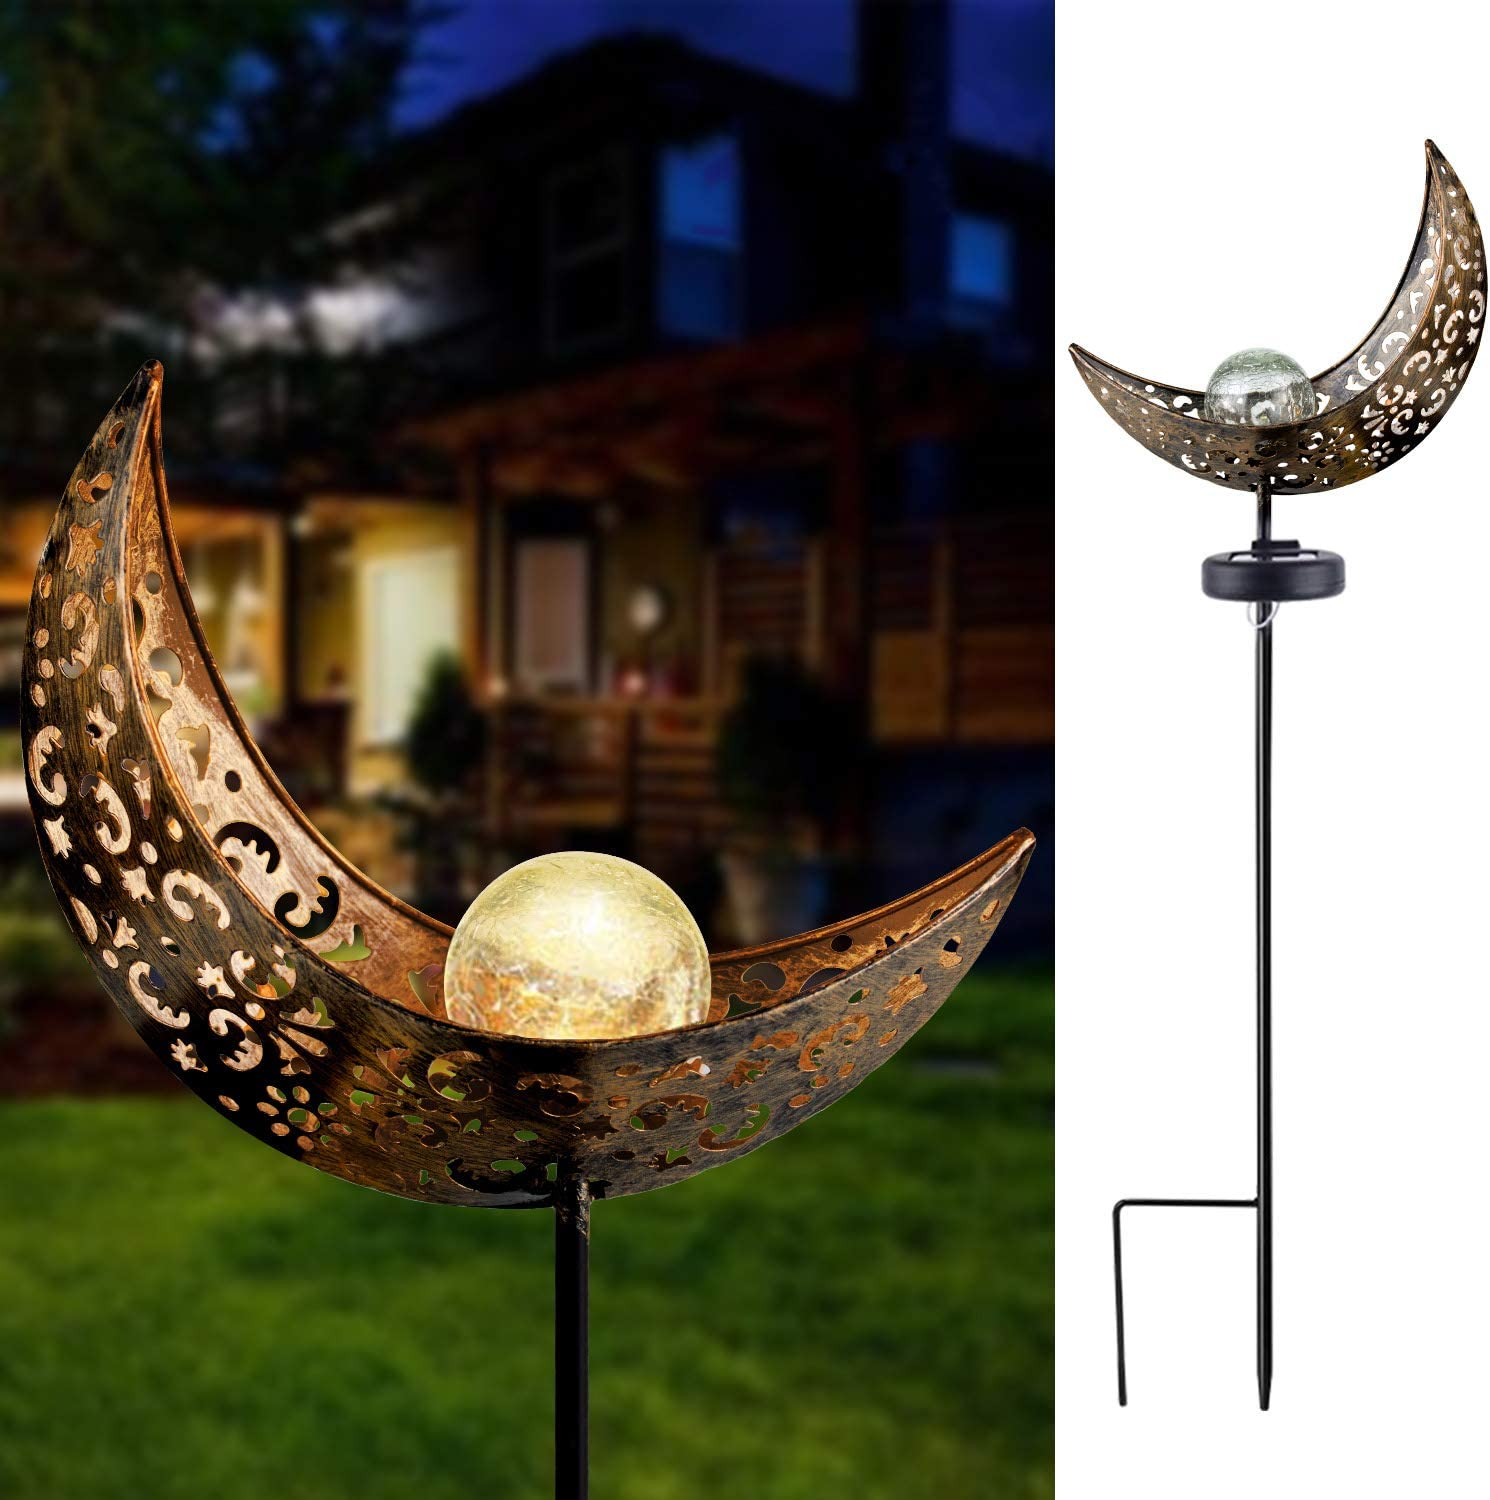 Solar Garden Lights - Solar Lights Outdoor Decorative - Moon Crackle Glass Globe Stake Metal Lights,Waterproof Warm White LED for Lawn,Patio or Courtyard